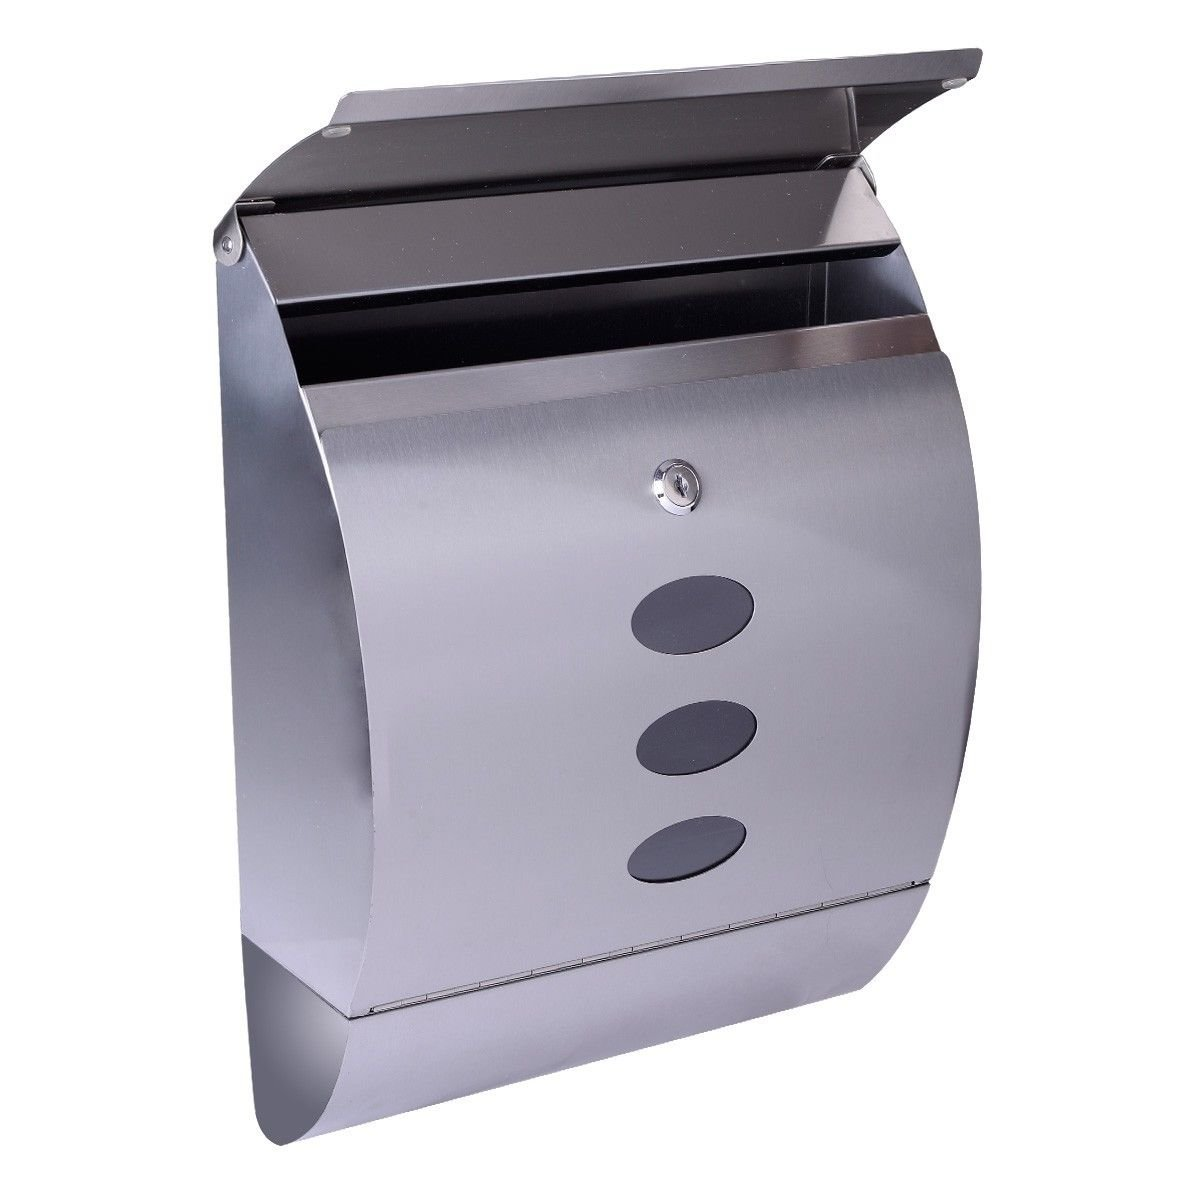 Stainless Steel Wall Mount Mail Box w/Retrieval Door & Newspaper Roll & 2 Keys